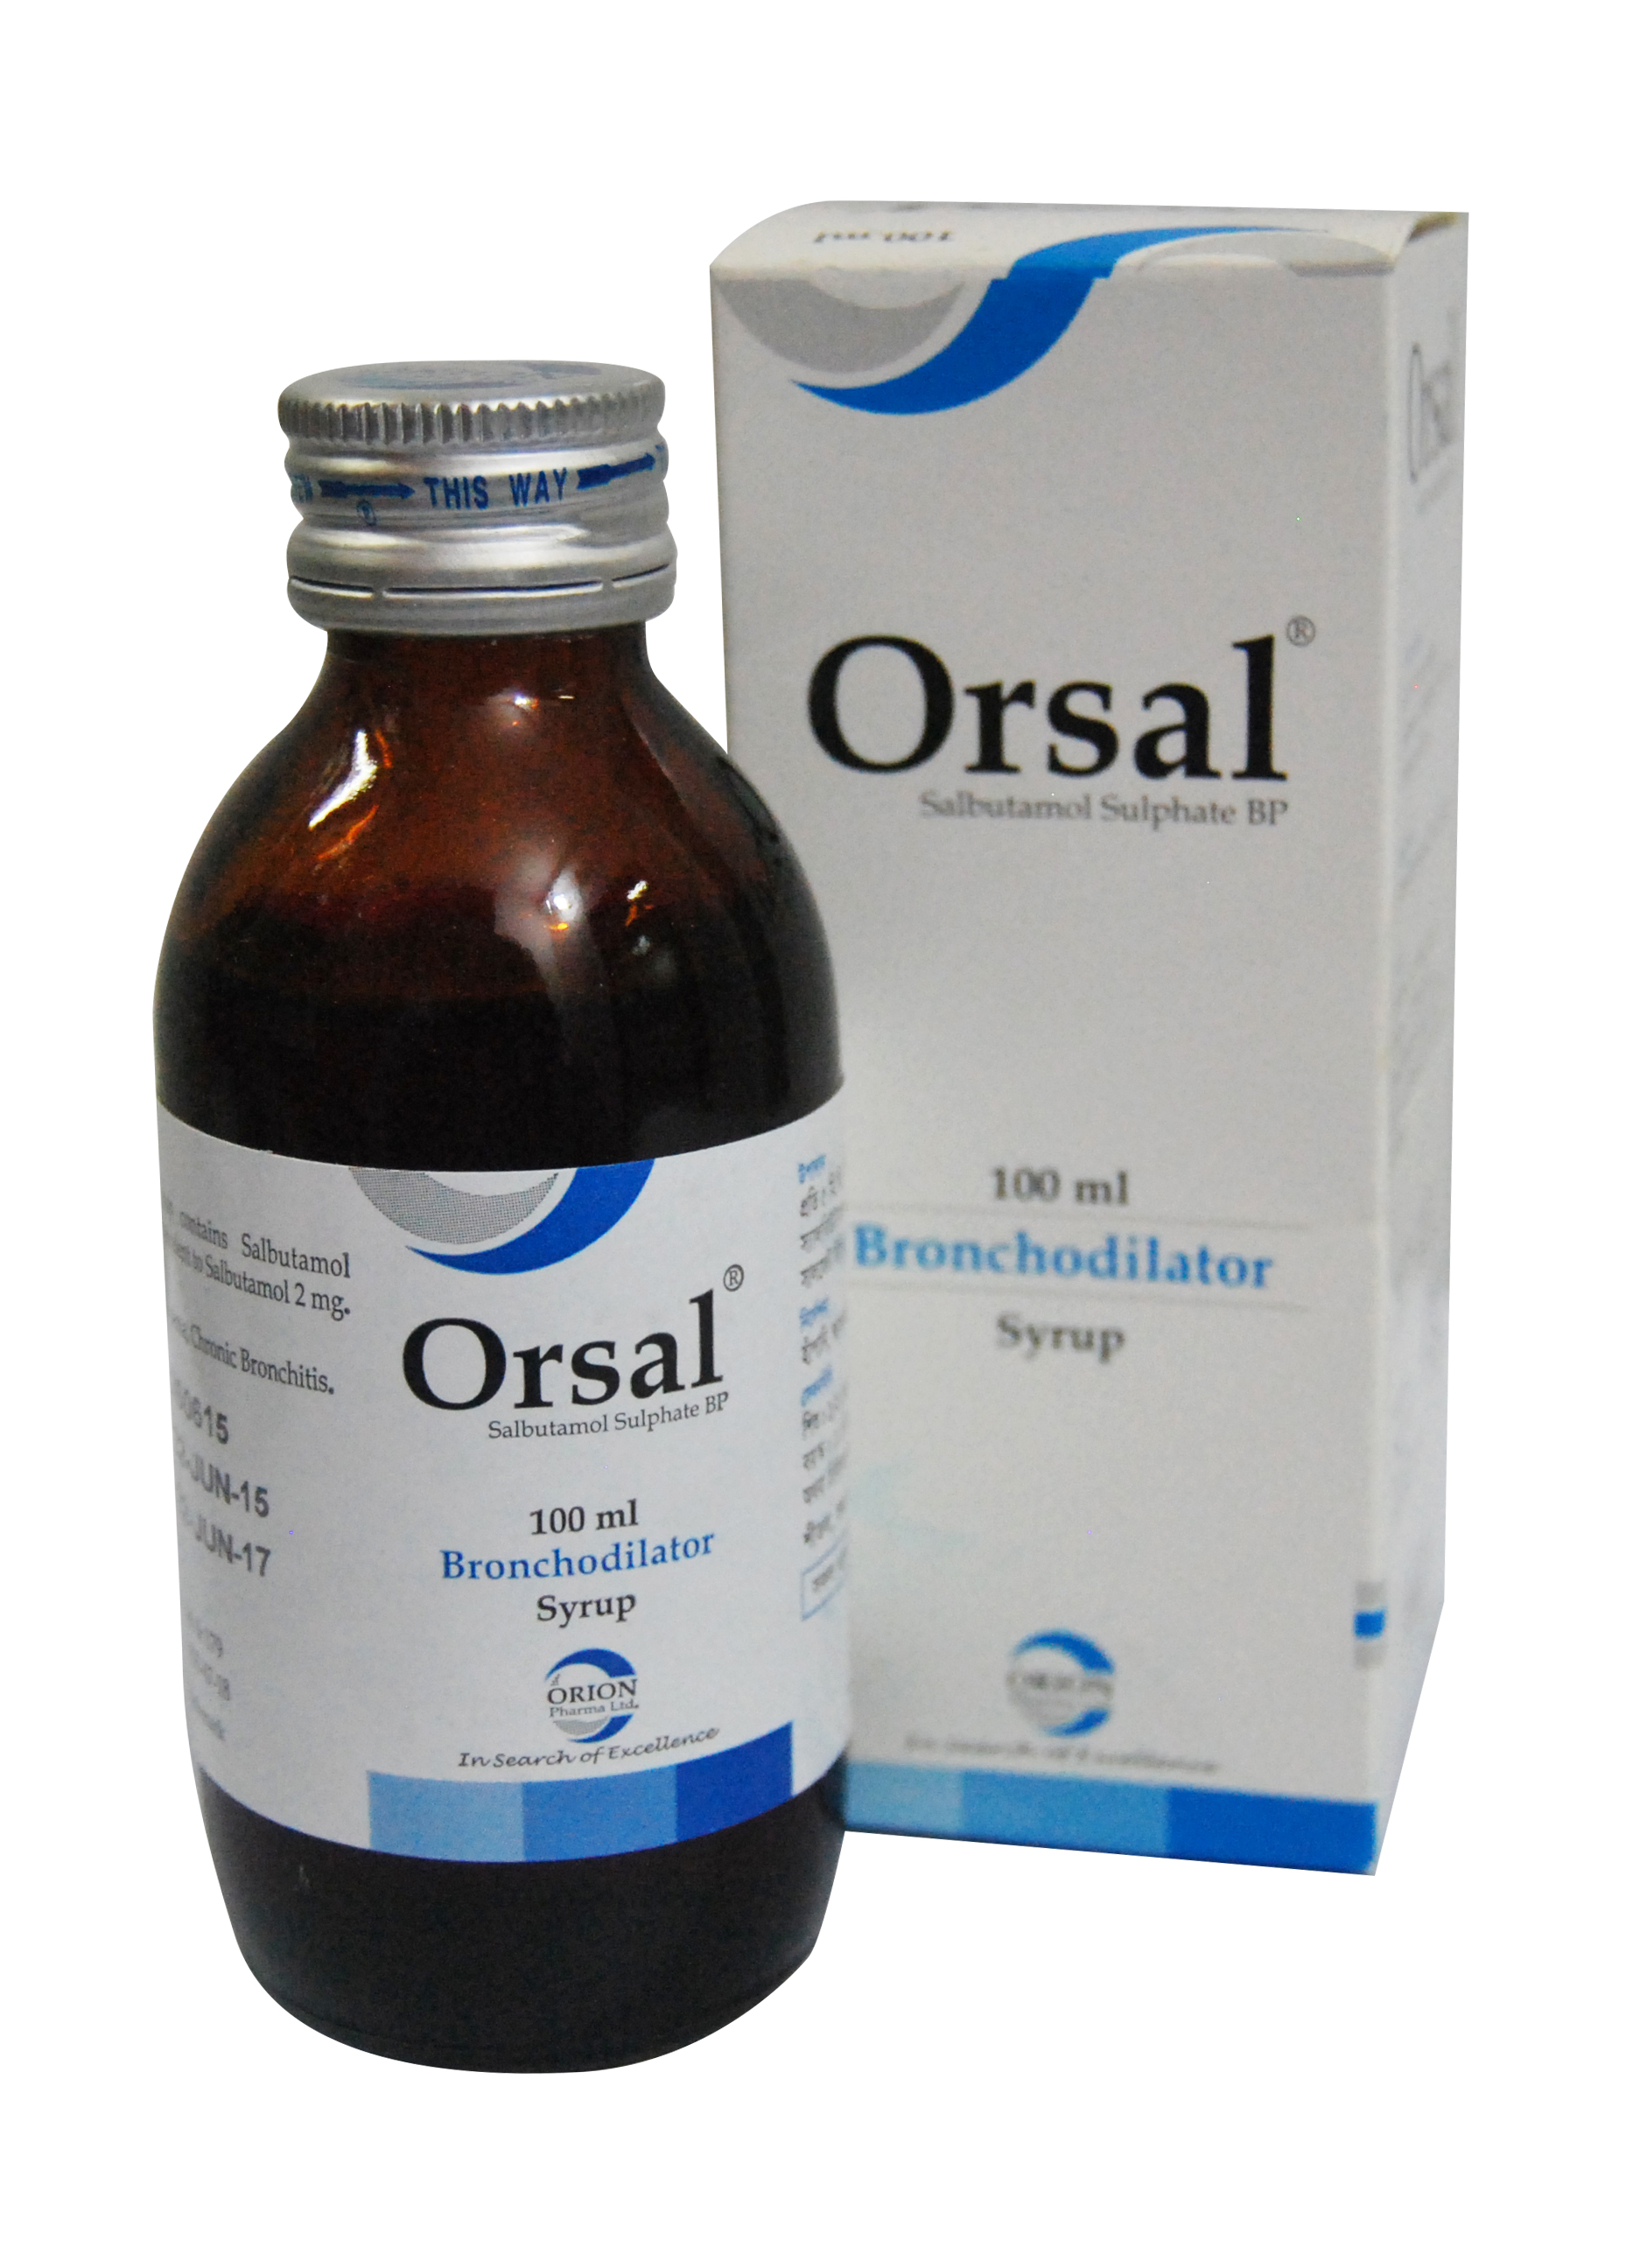 Orsal Syrup